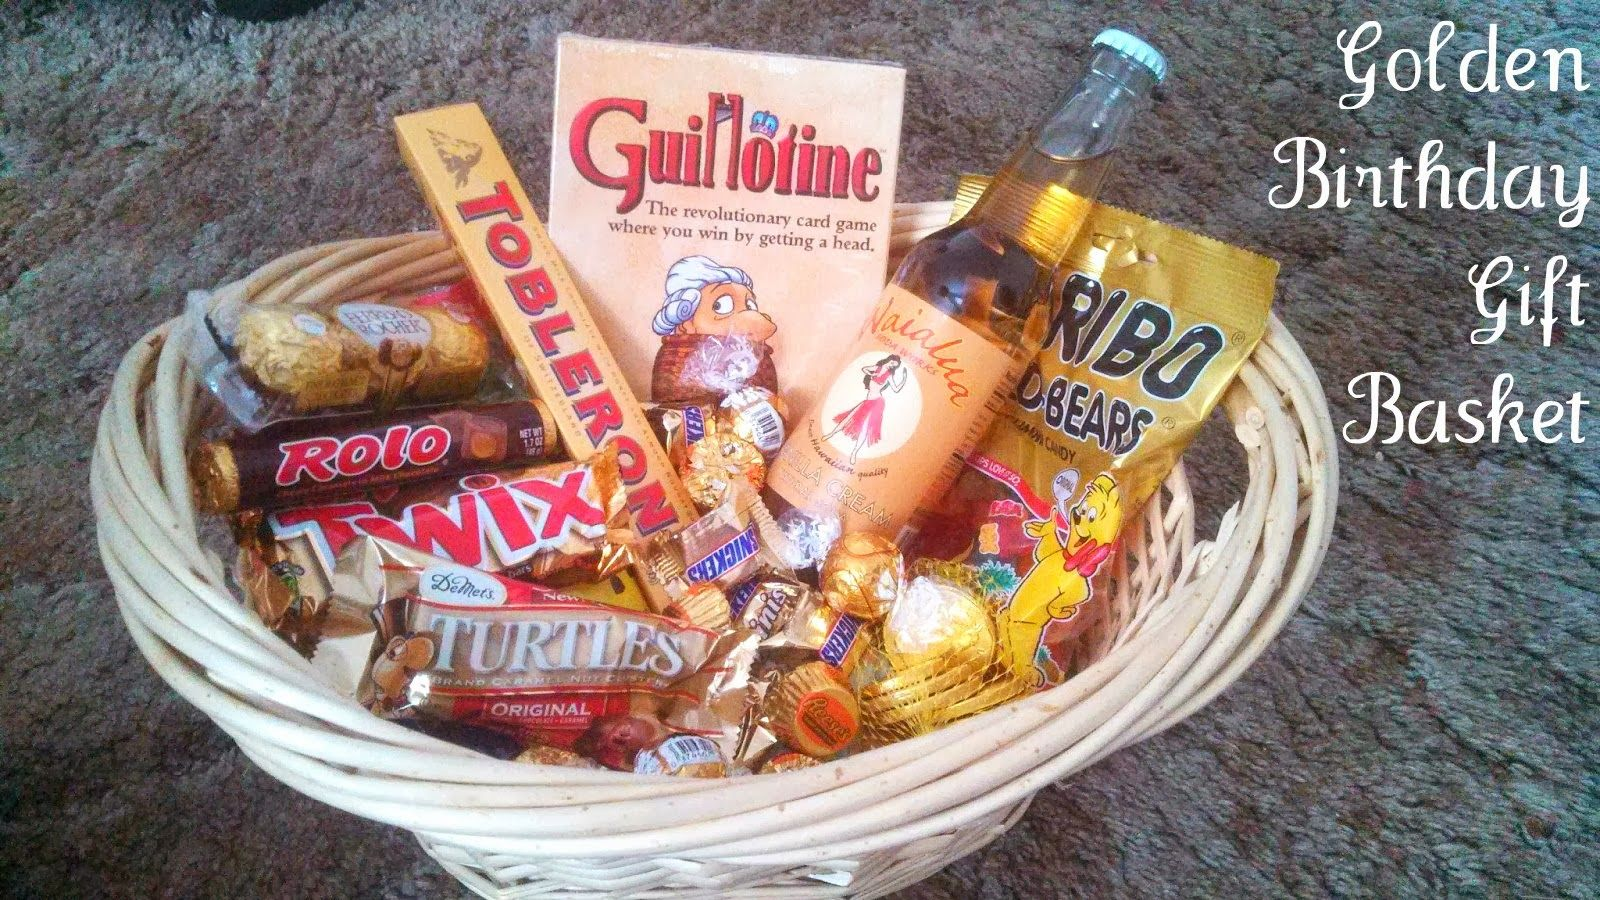 Golden Birthday Gift Basket Idea